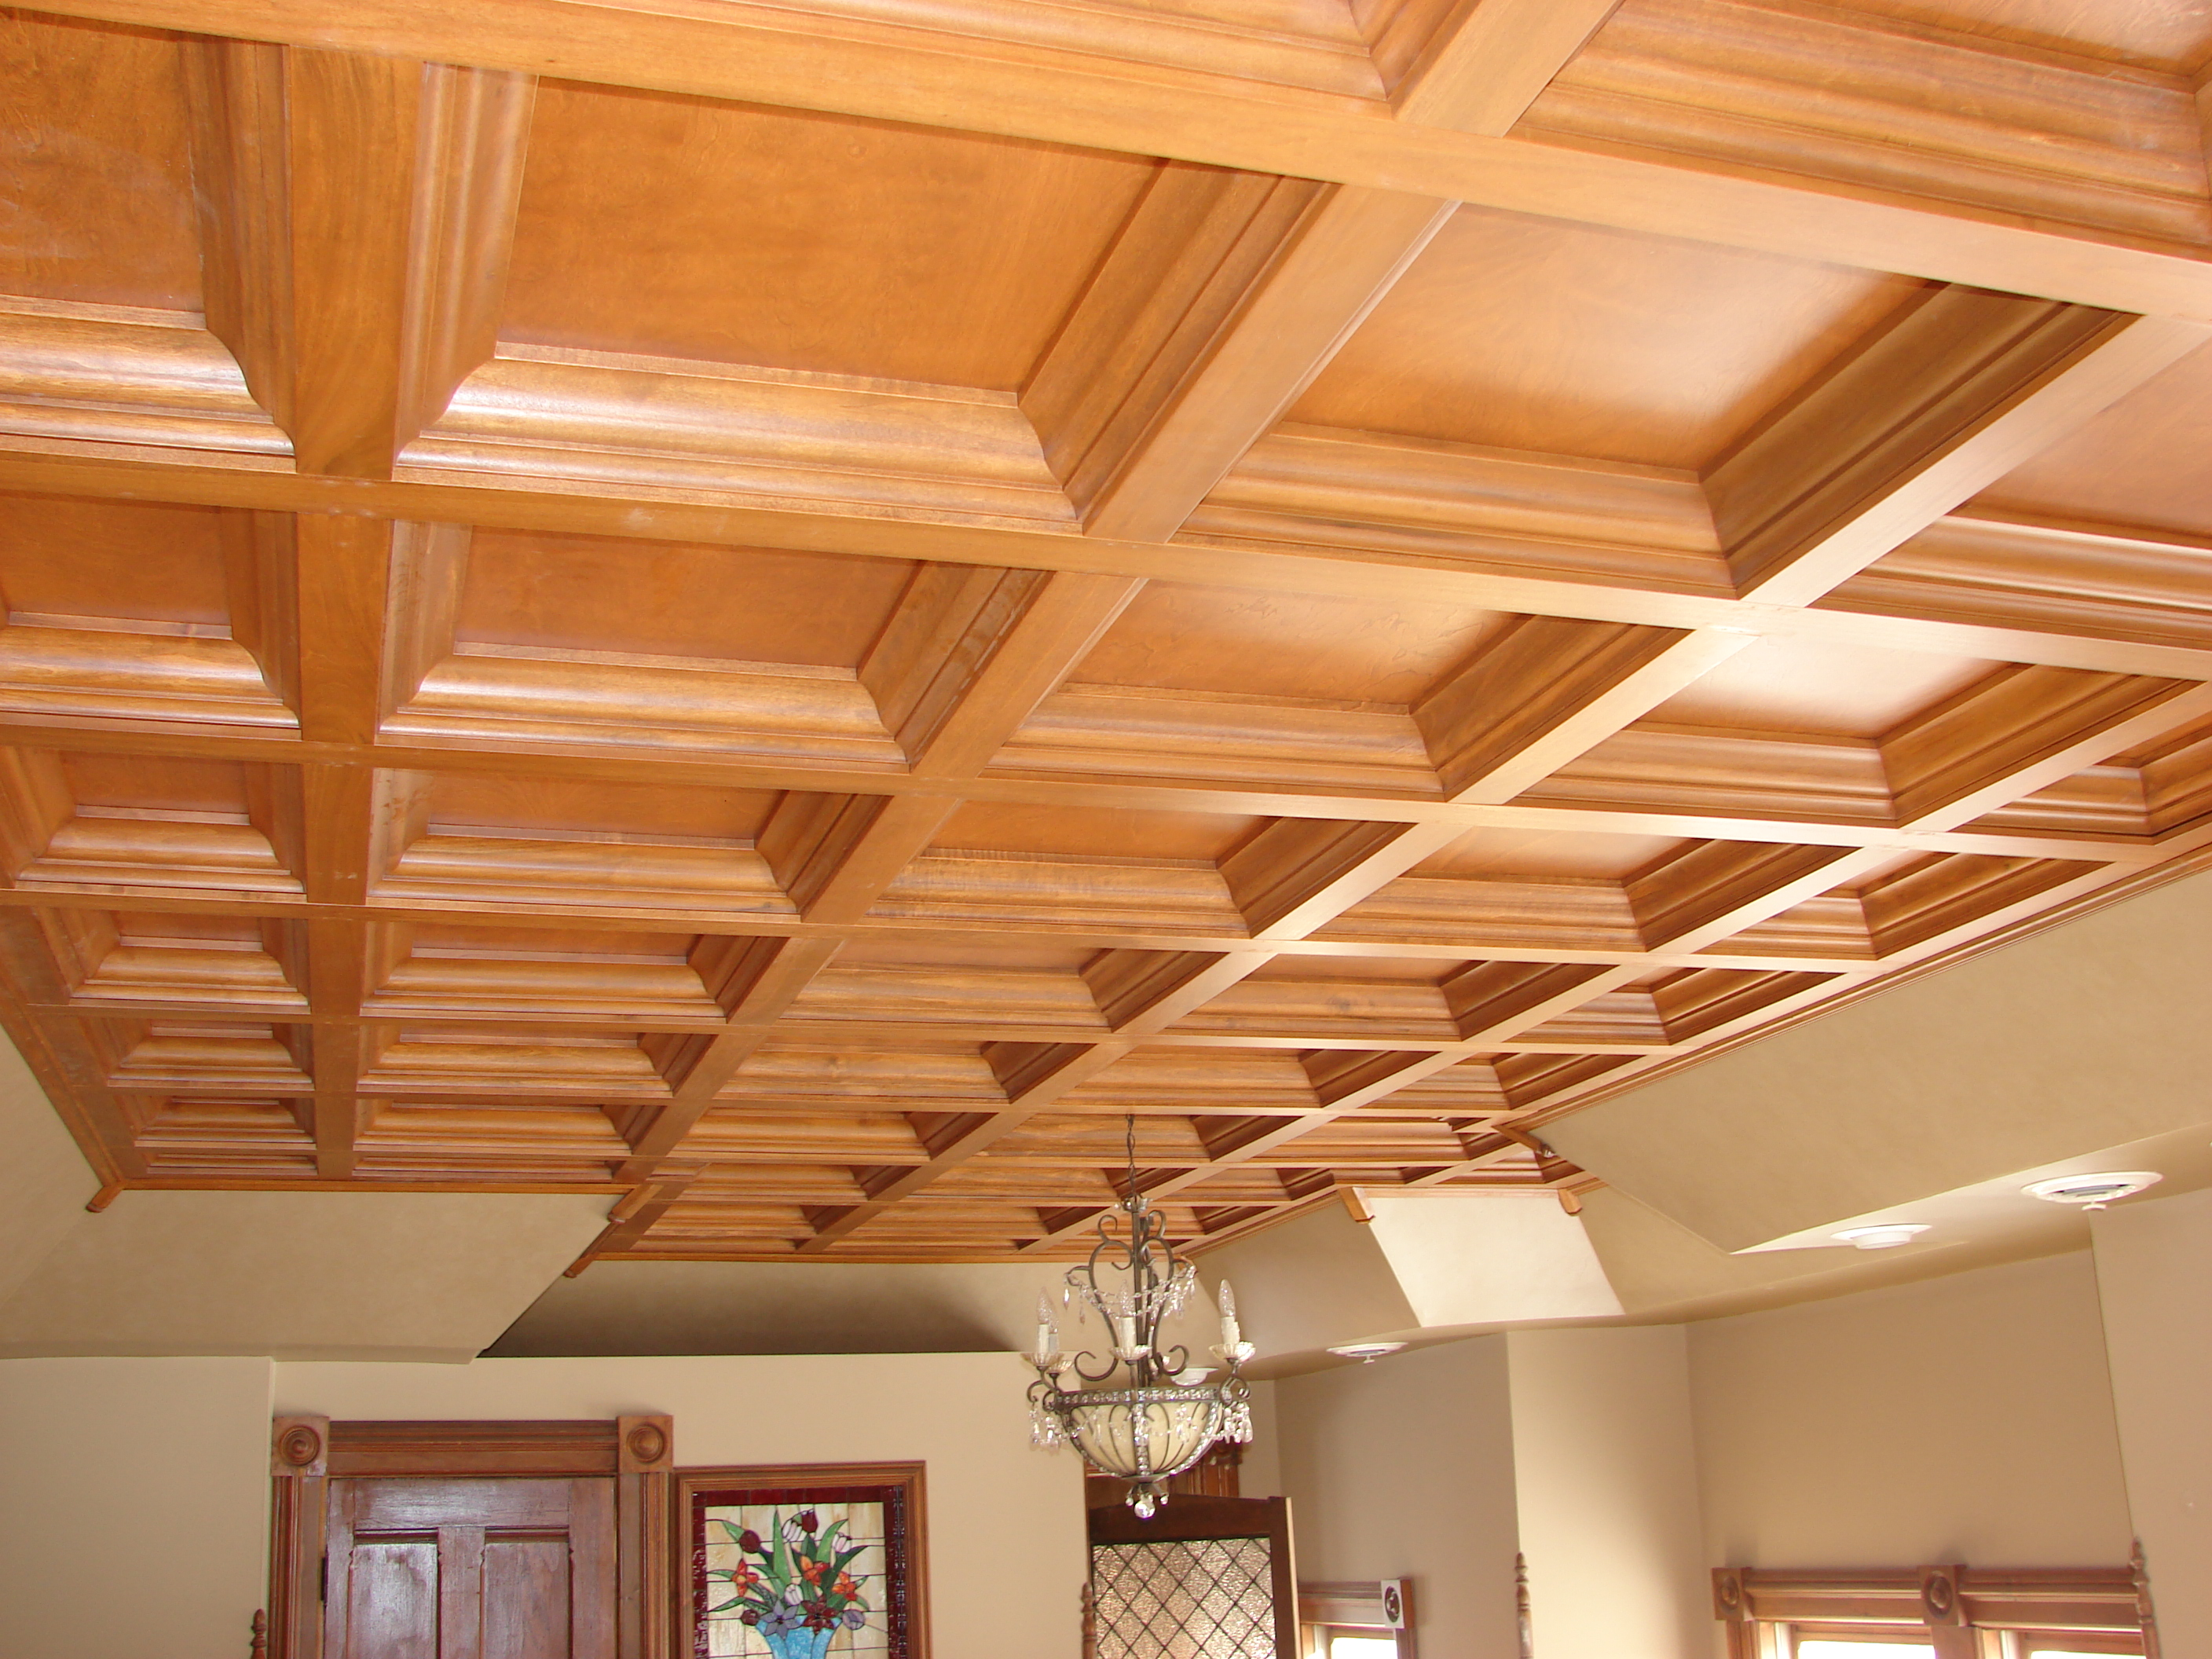 Vaulted ceiling new build home design idea for Coffered ceiling styles